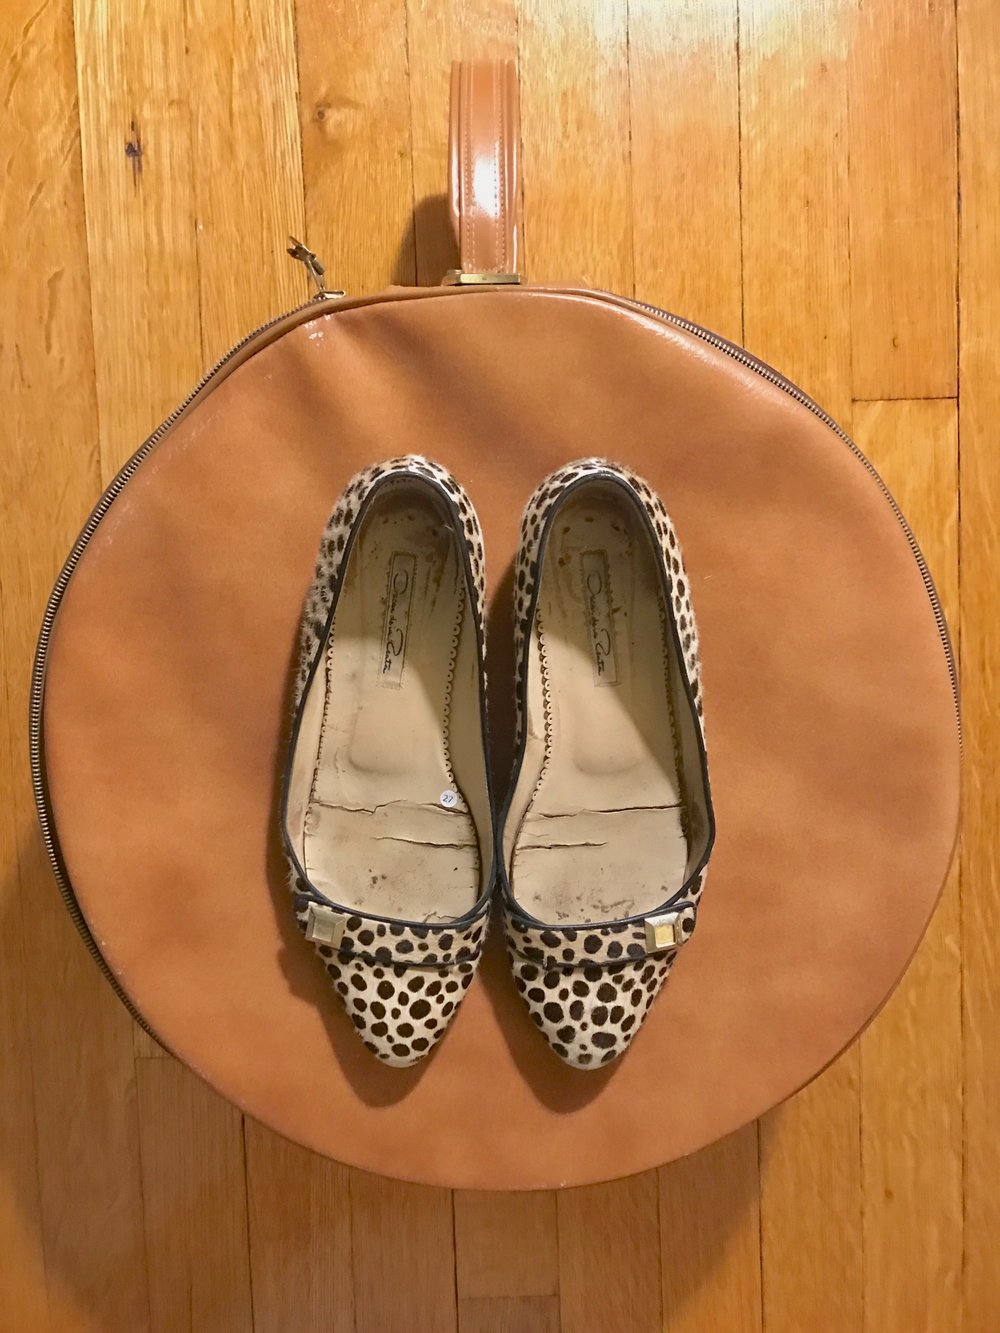 My oh-so-loved Oscar De La Renta flats + vintage round luggage.